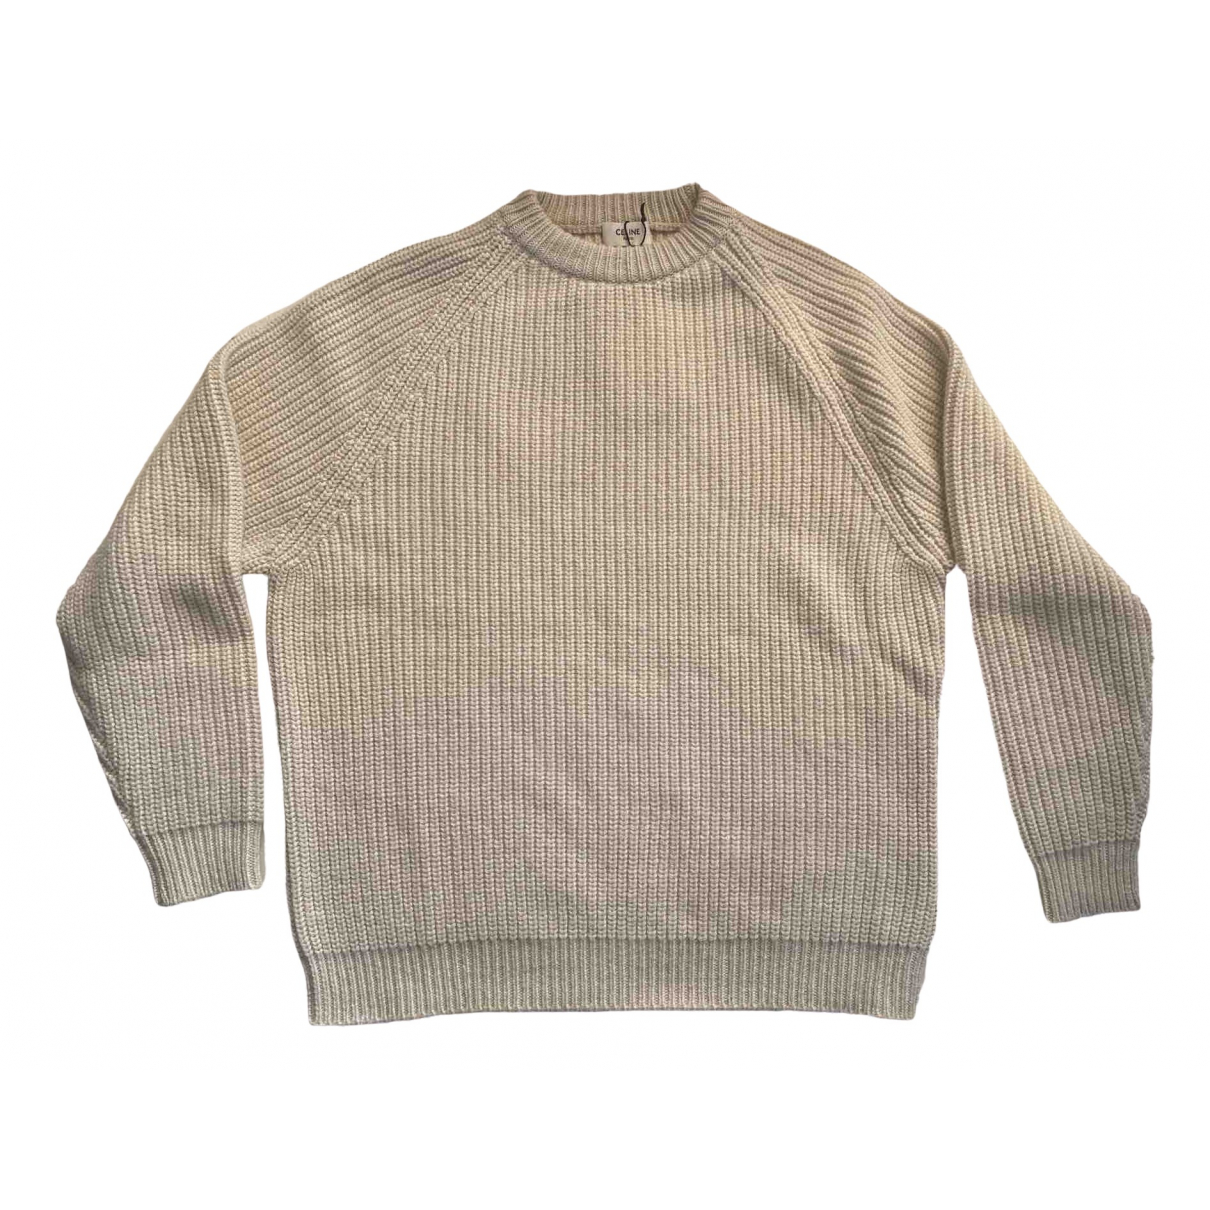 Celine \N Beige Cashmere Knitwear for Women XS International